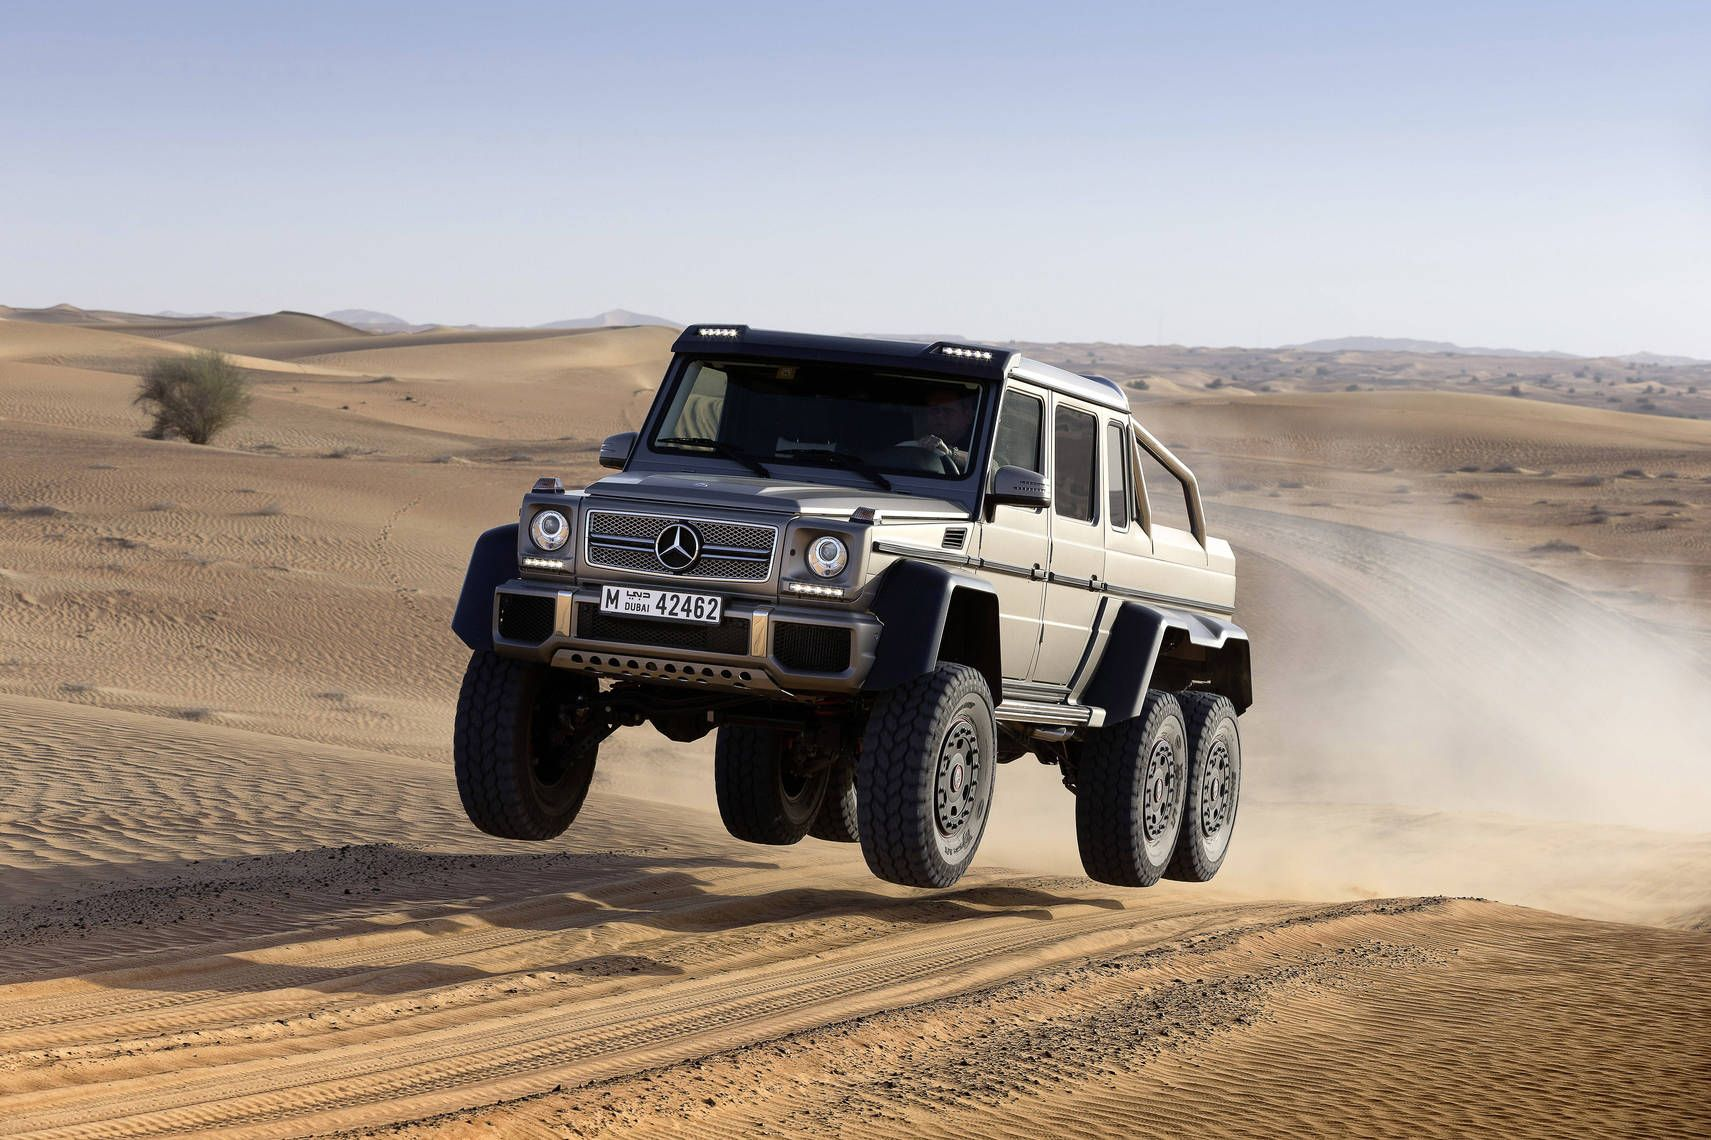 Best Off Road Vehicle Of All Time >> 14 Best Off Road Vehicles Of All Time If You Are An Off Road